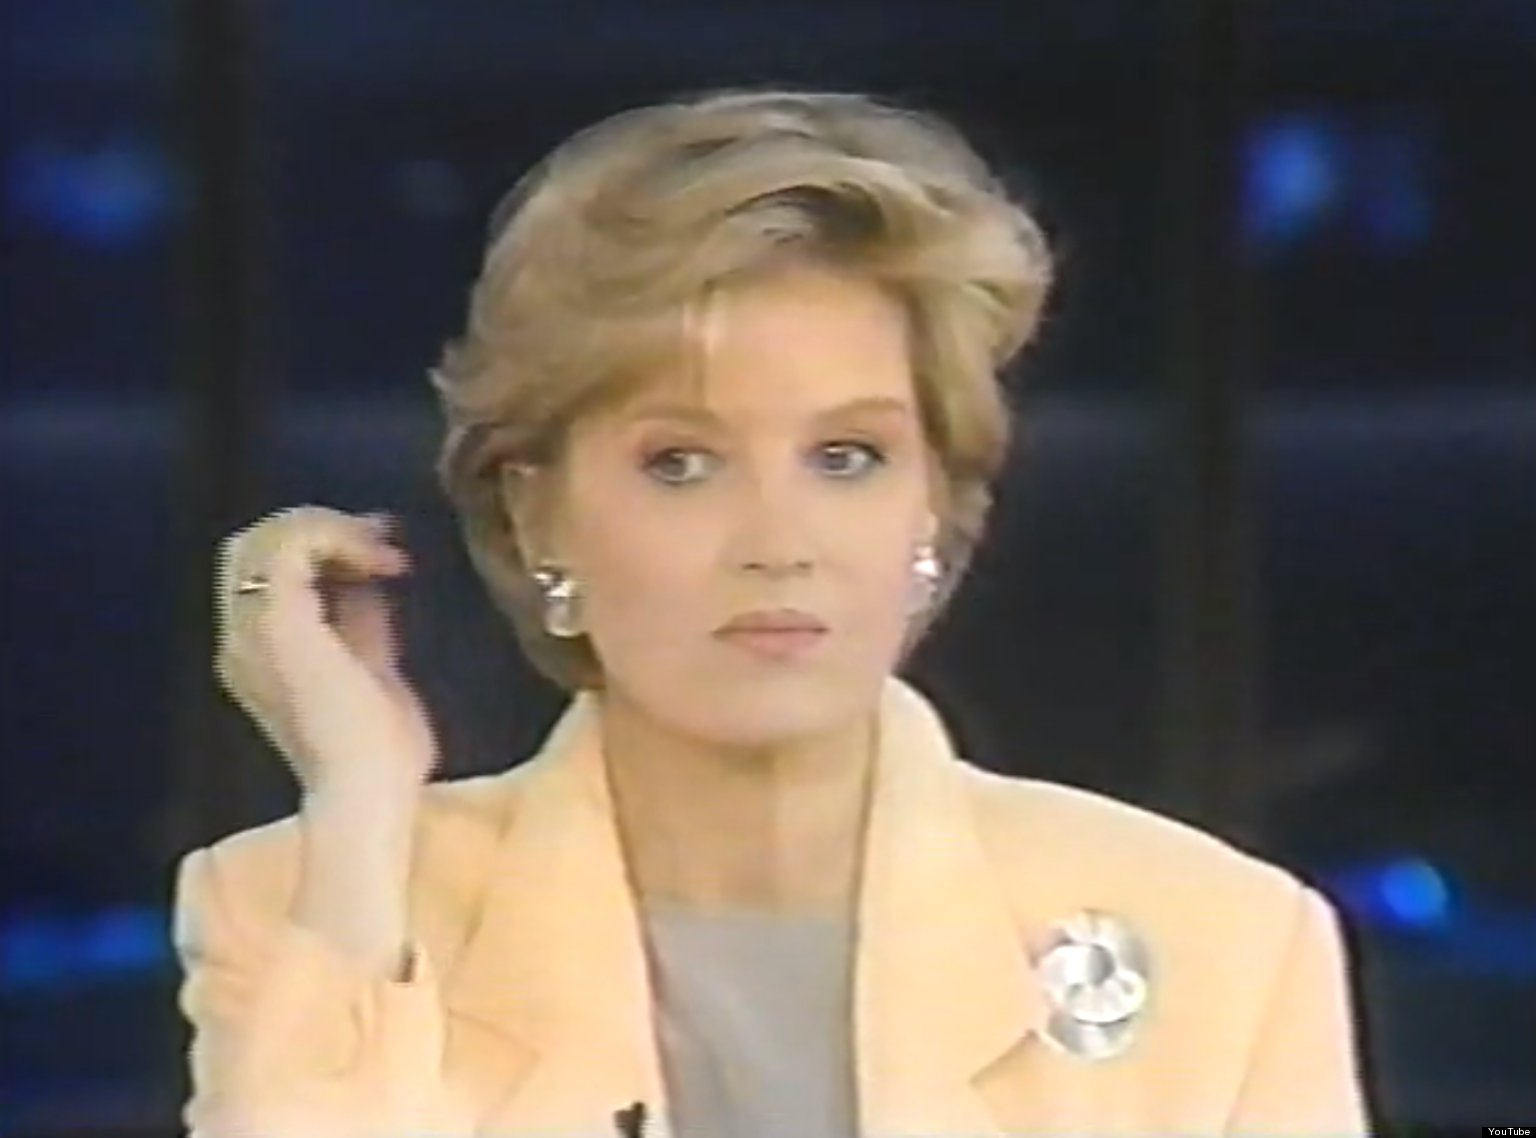 Diane Sawyer Sips Red Wine Is Gorgeous Imperfect And Awesome In Old Primetime Live Footage Huffpost